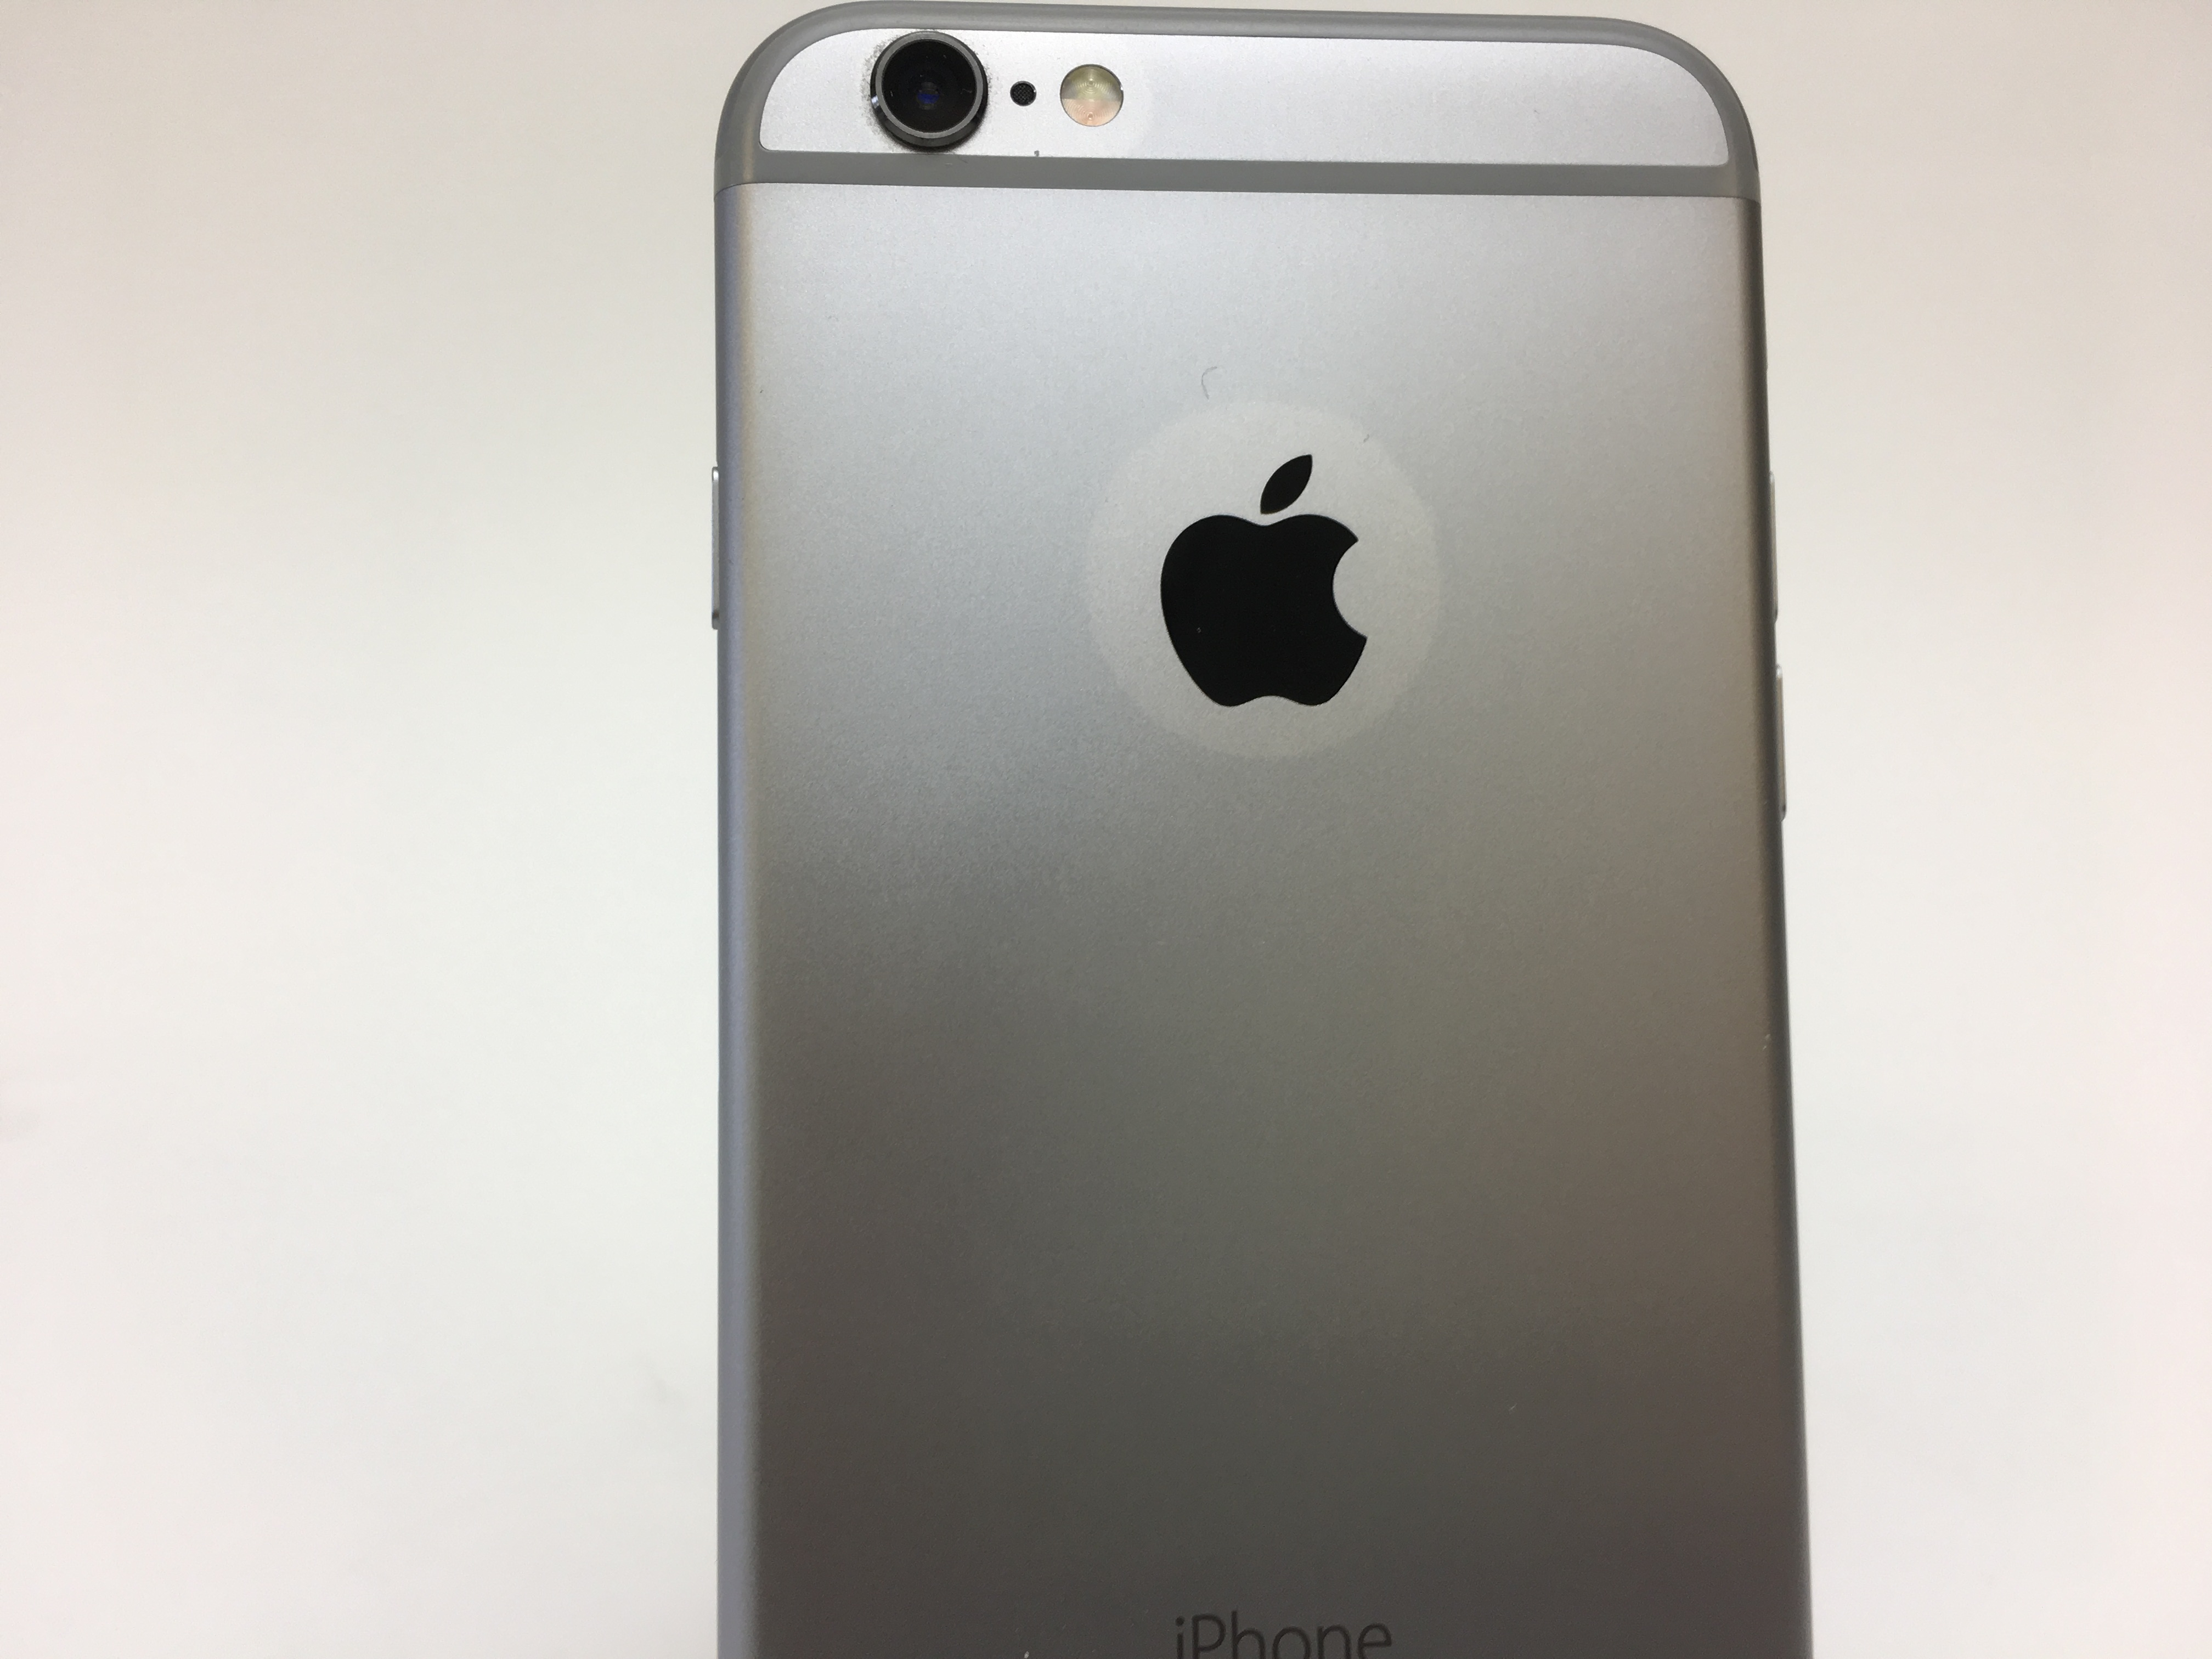 iPhone 6S, 16 GB, Space Grey, Product age: 30 months, image 3